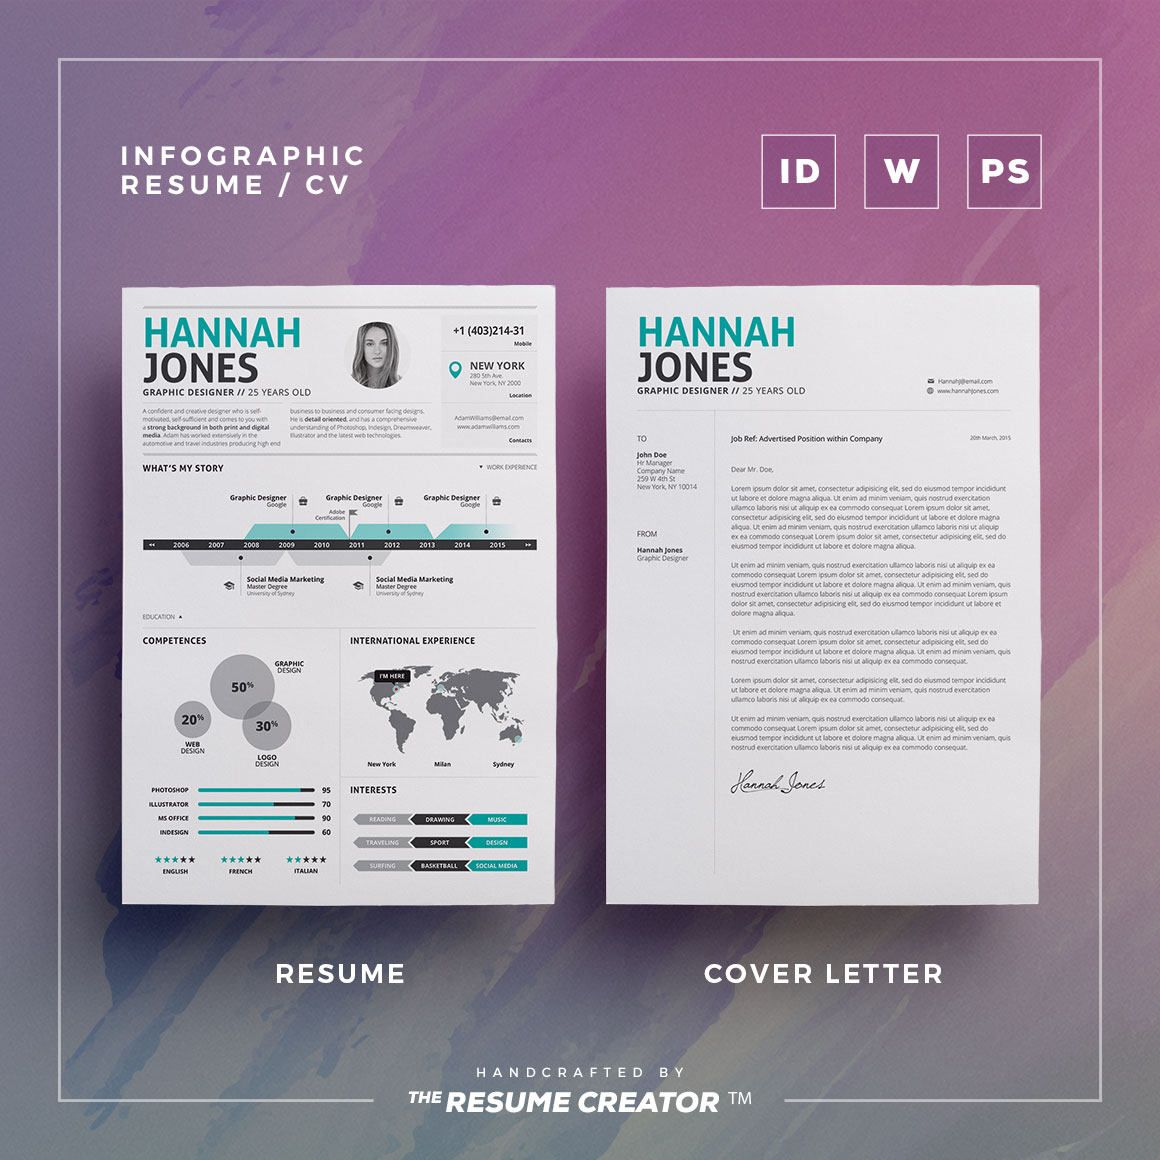 Infographic Resume Word Indesign and Photoshop Infographic